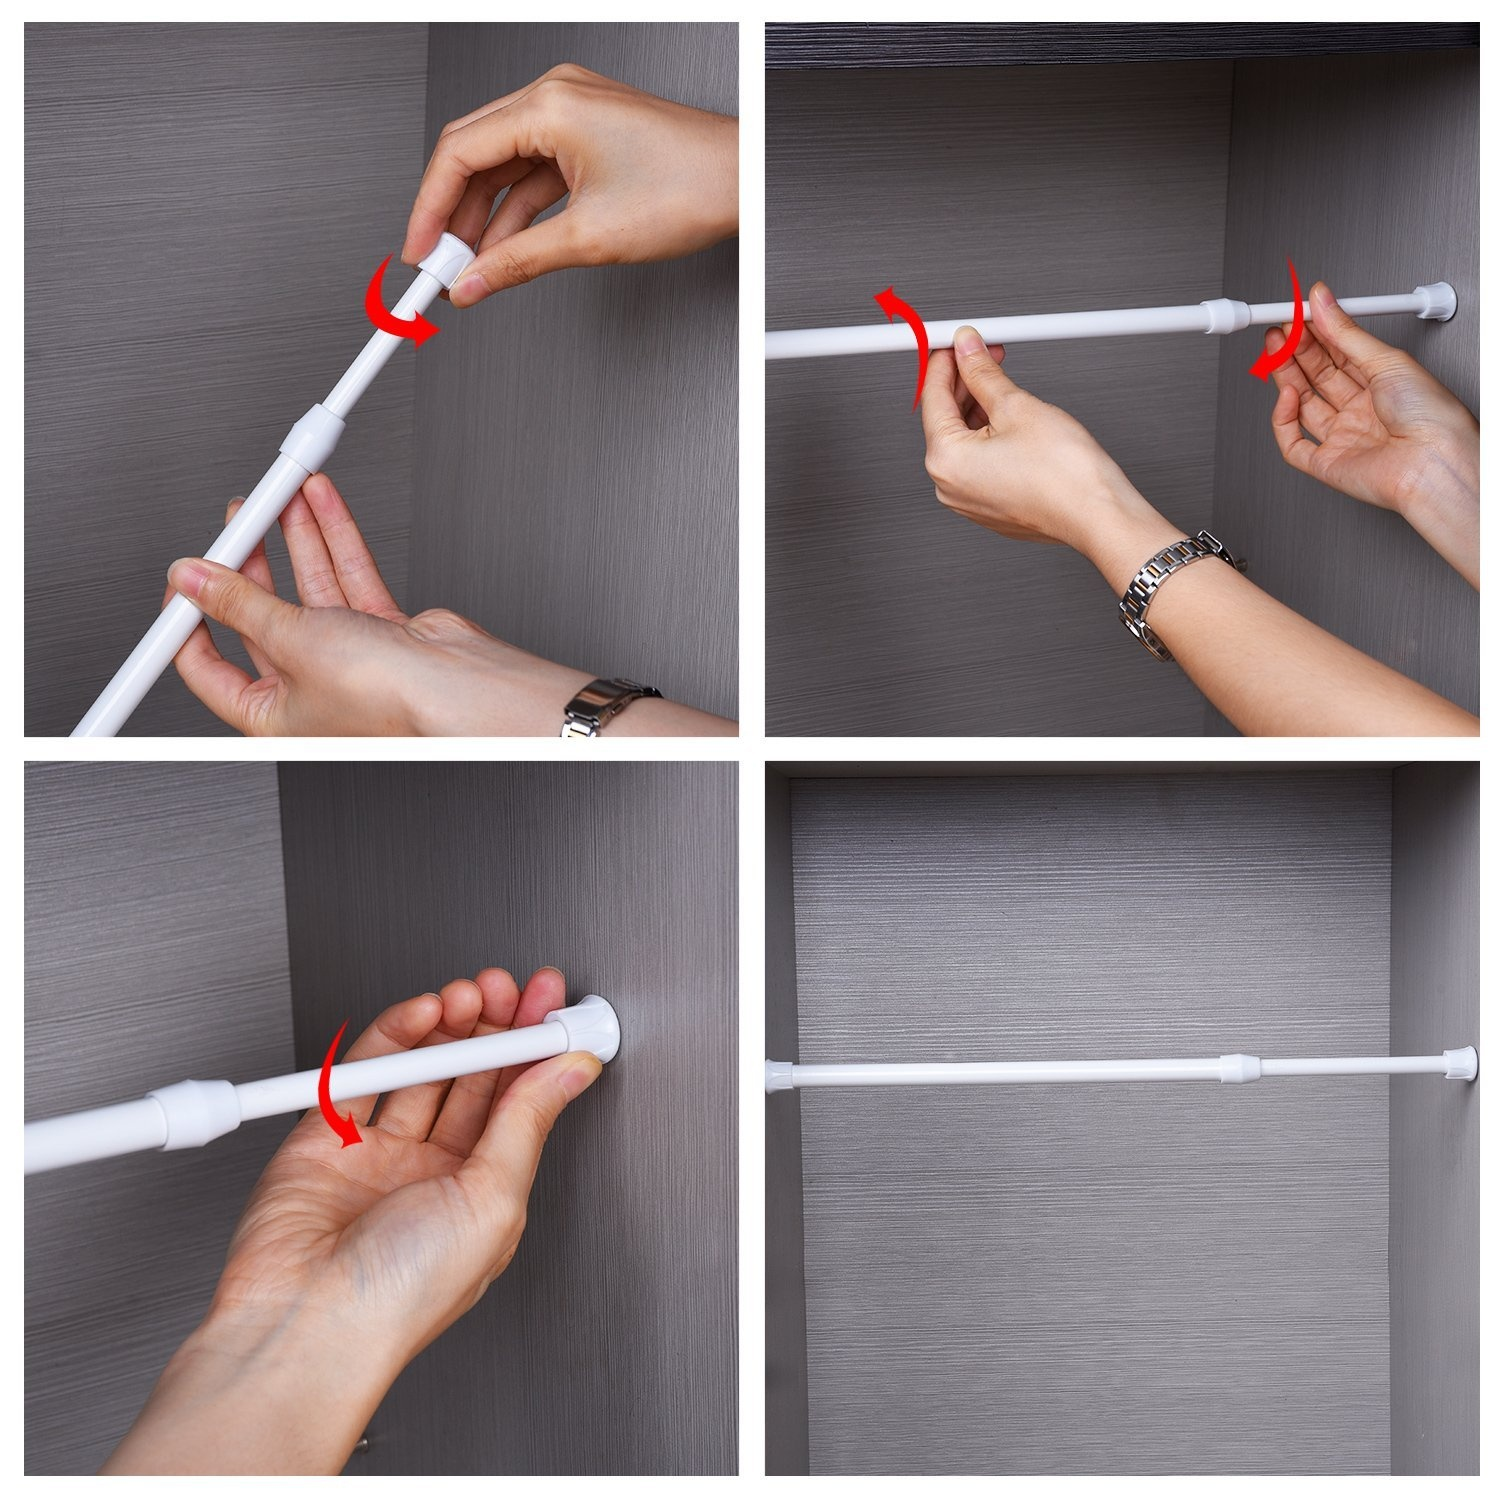 4 Size Extendable Spring Telescopic Net Voile Tension Curtain Curtain Rail Loaded Shower Pole Rod